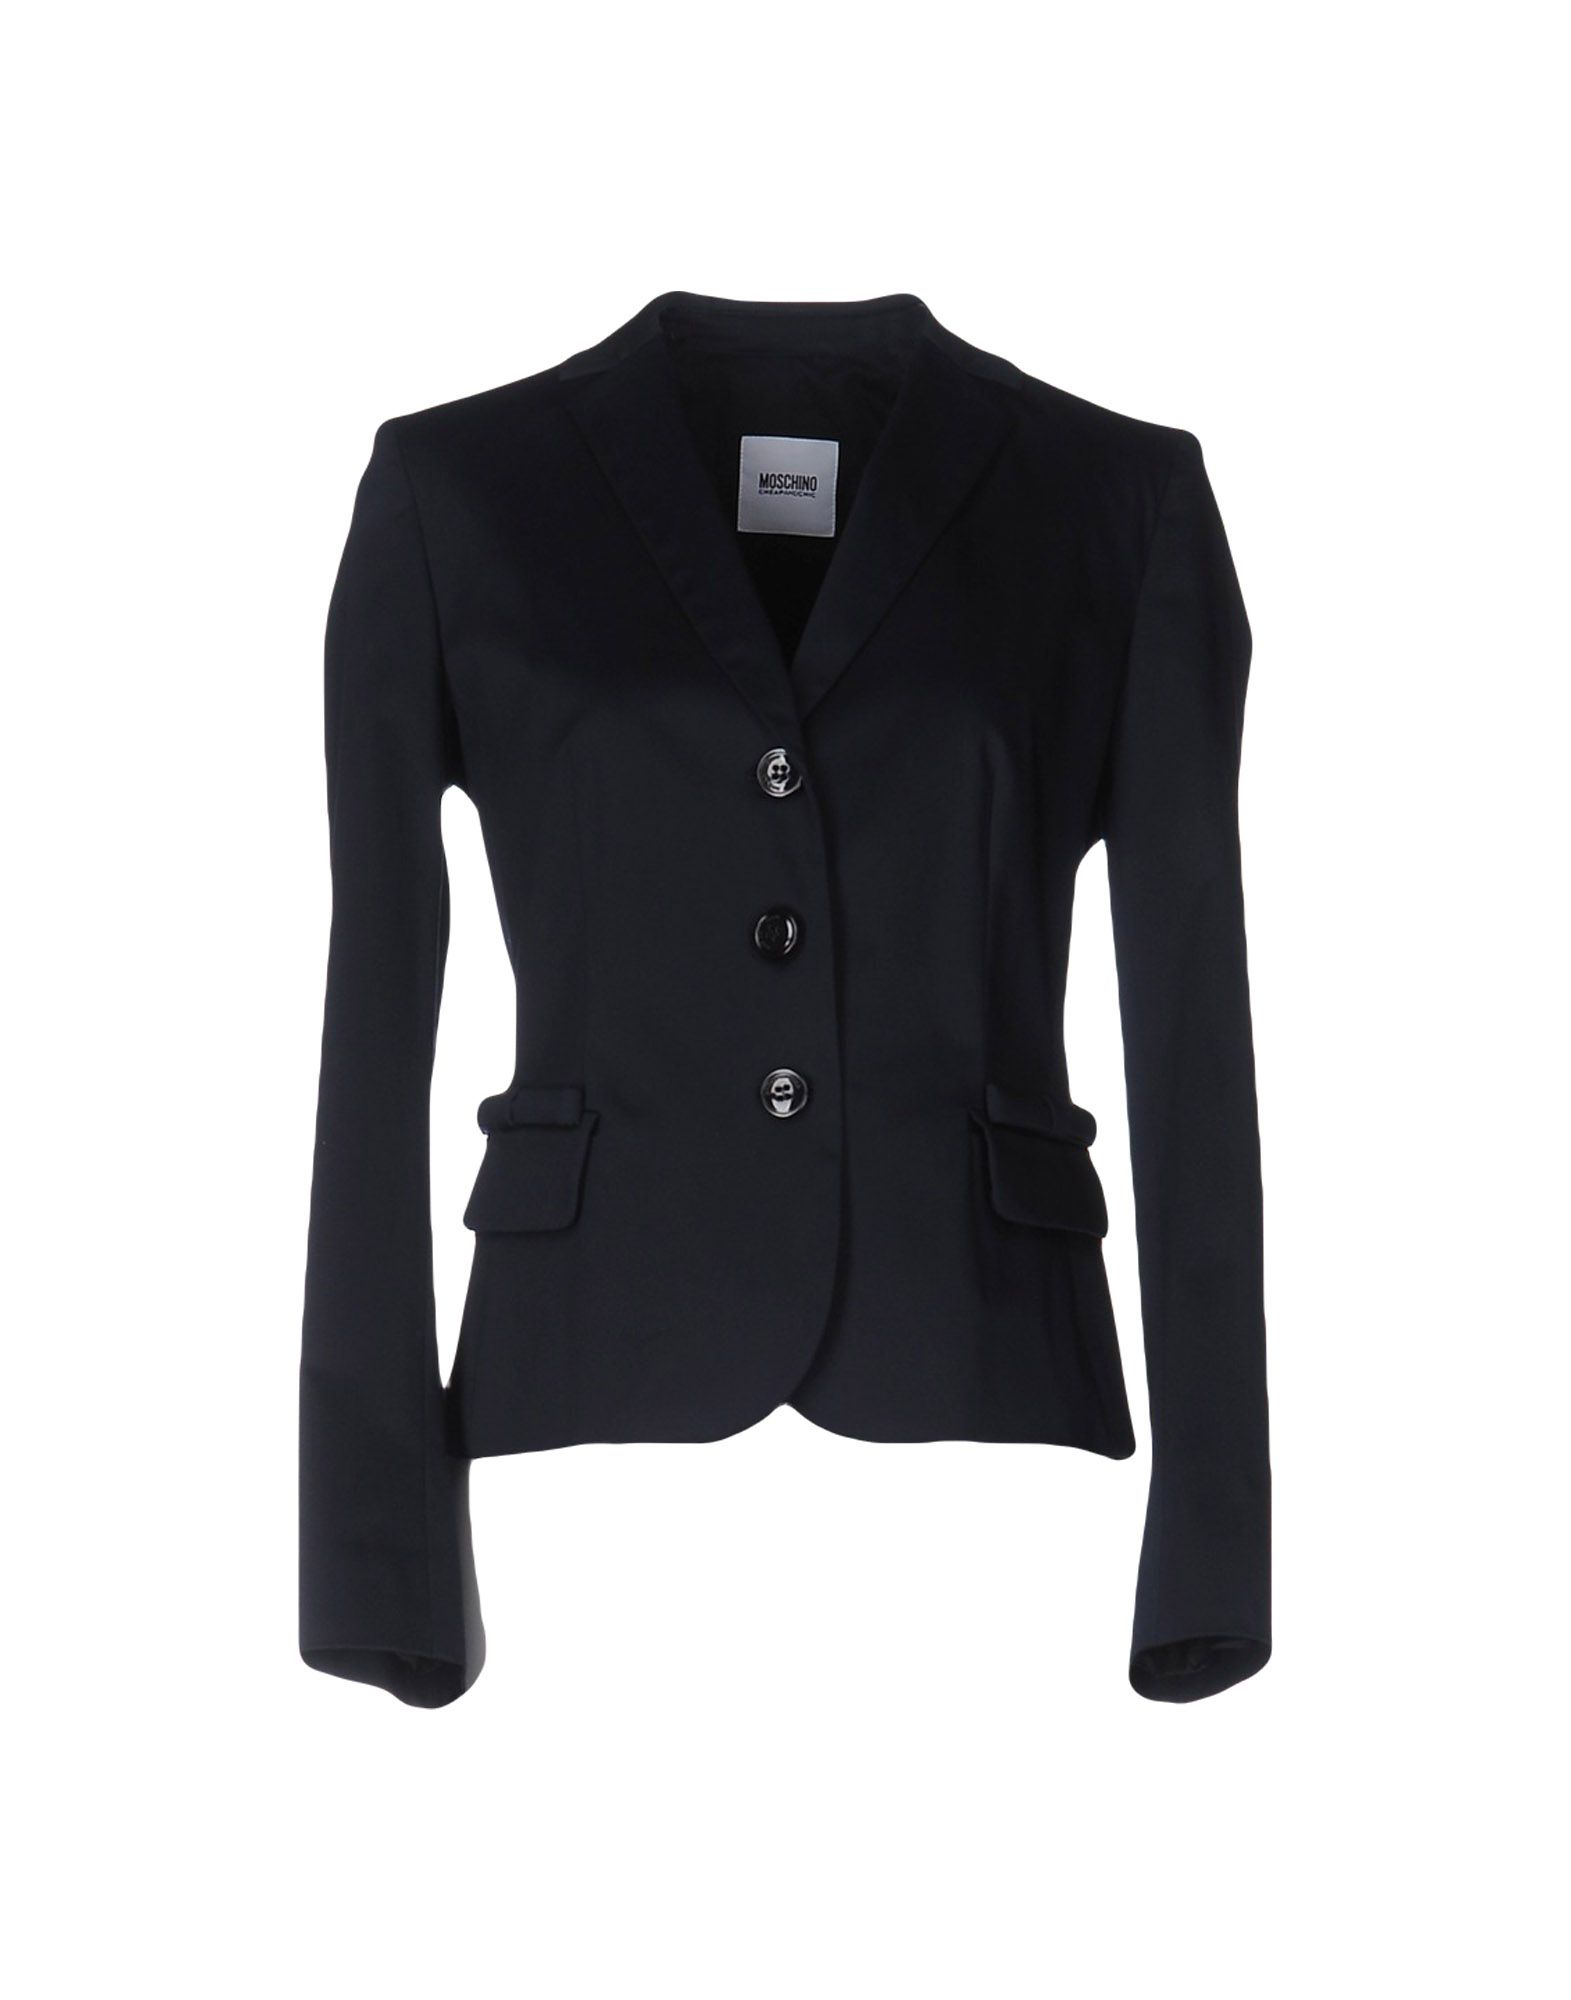 Moschino Cheap And Chic Blazer - Women Moschino Cheap And Chic ... a417077eff8